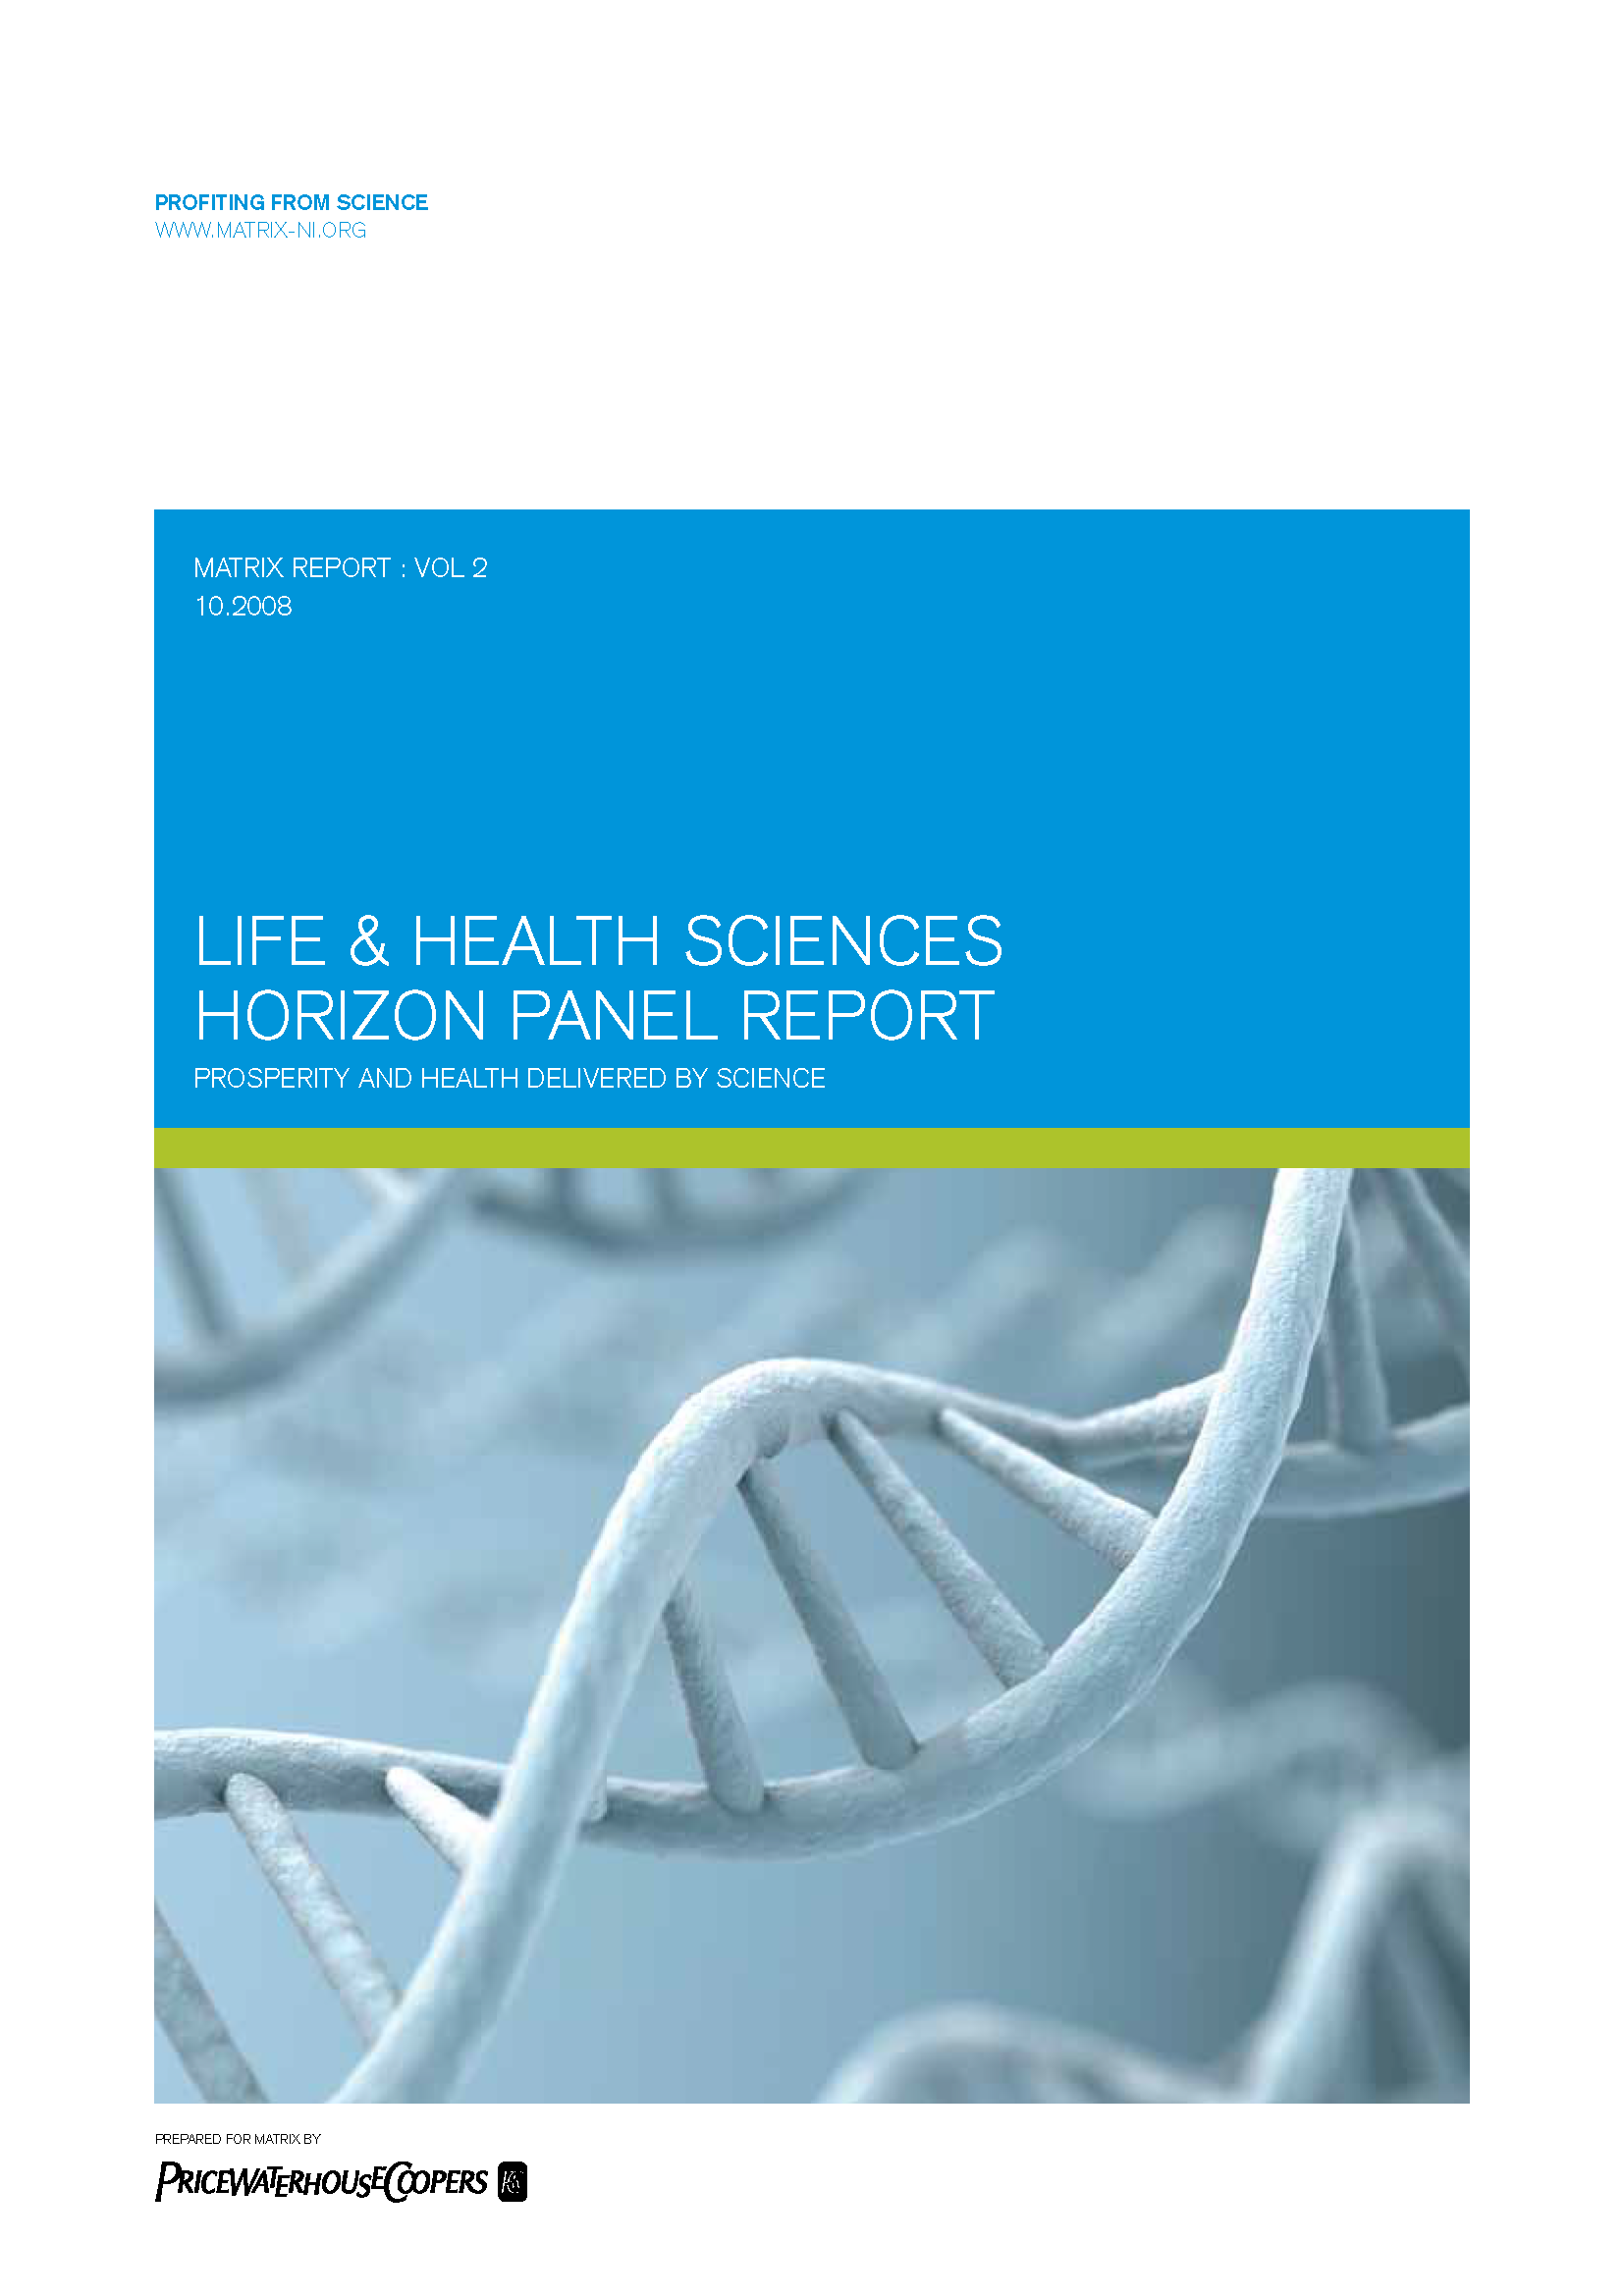 Life & Health Sciences Report 2008